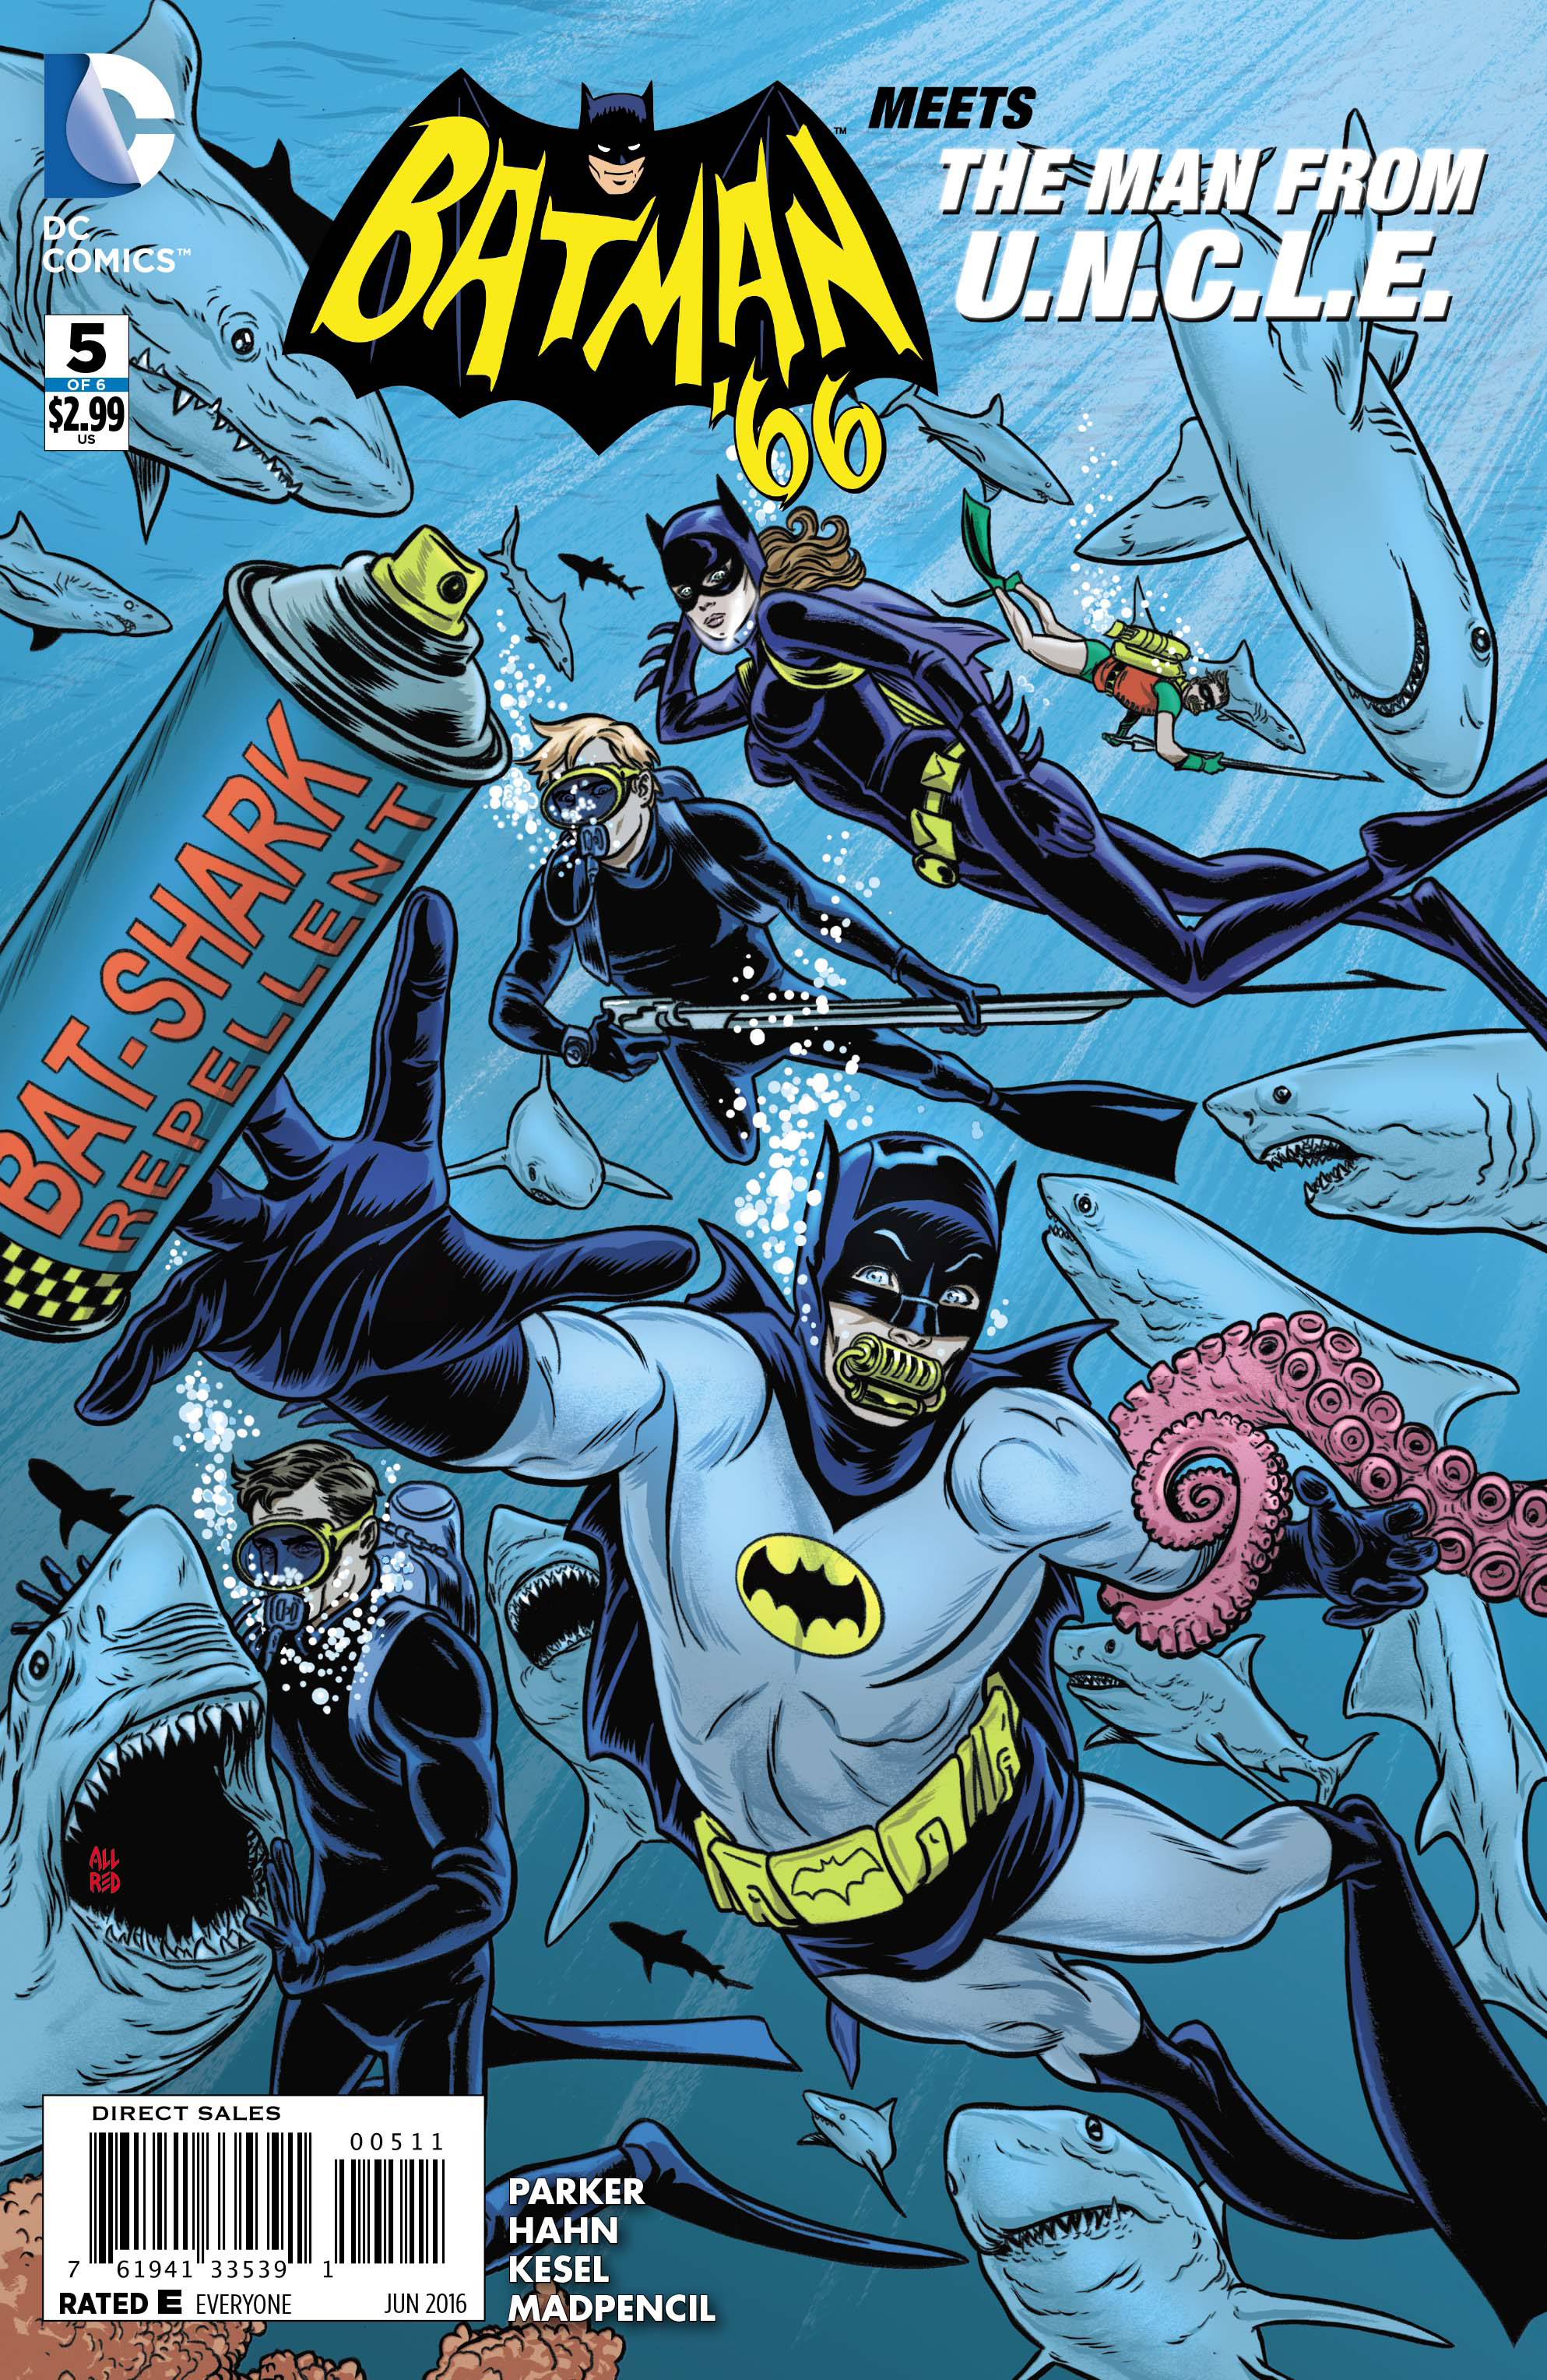 BATMAN 66 MEETS THE MAN FROM UNCLE #5 (OF 6)